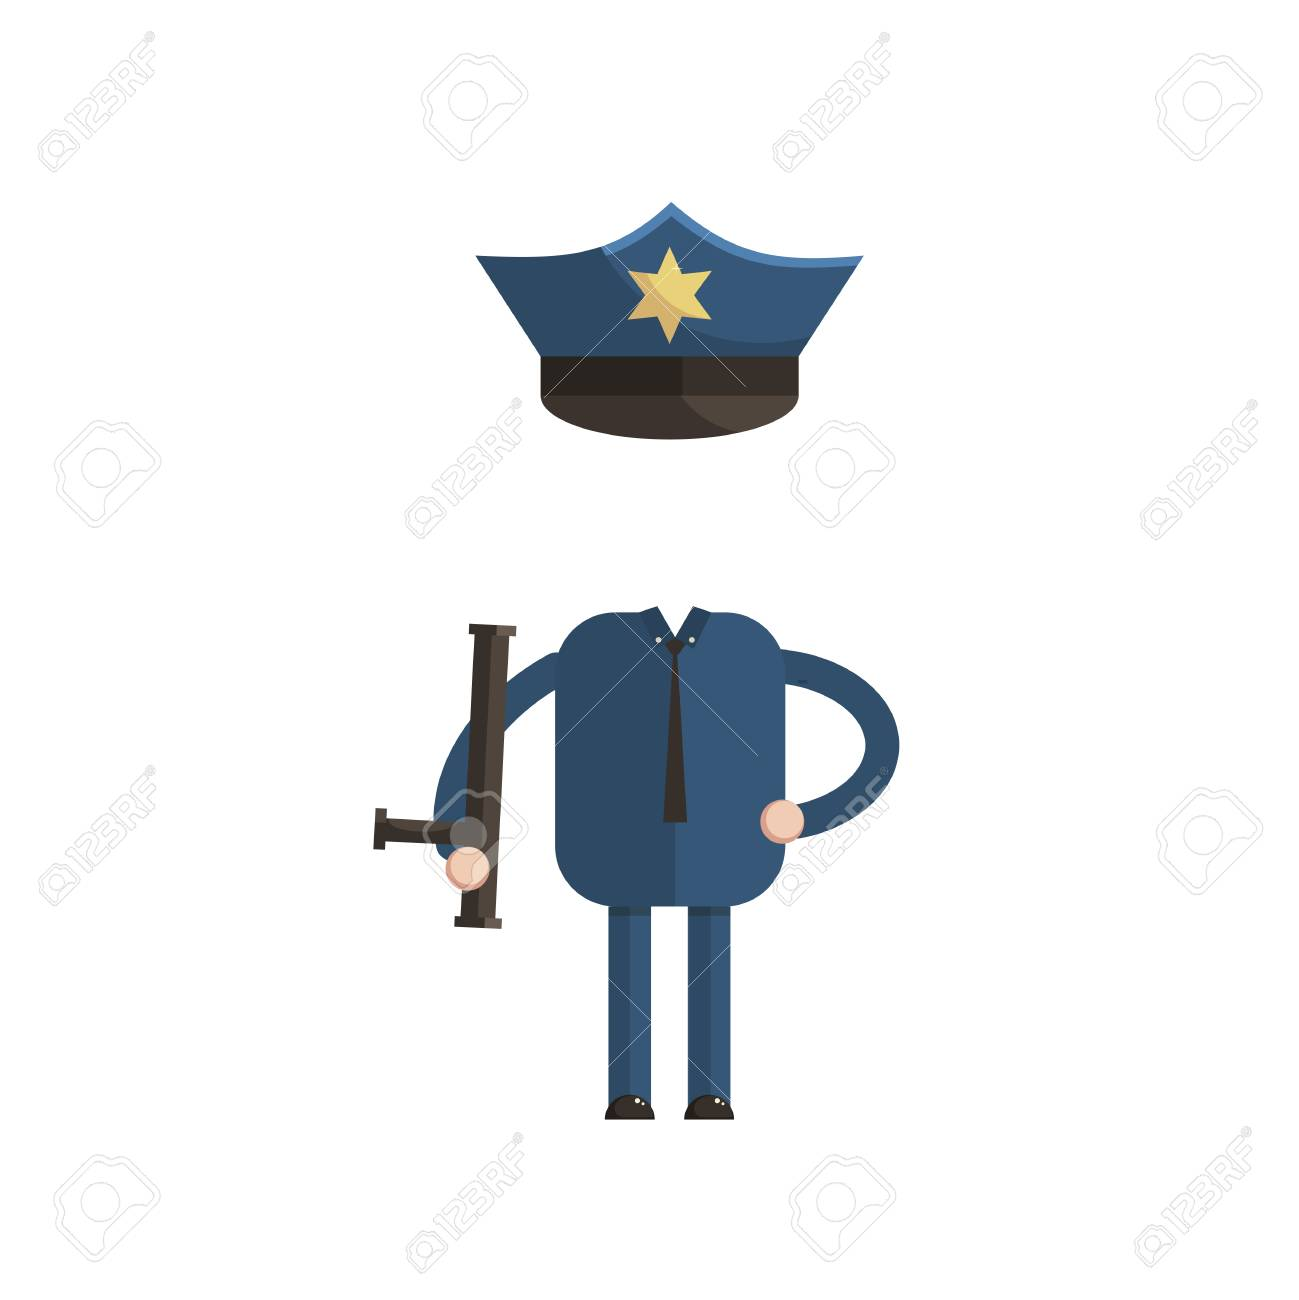 Sticker for a photo or game a police officer costume cartoon style vector illustration cartoon